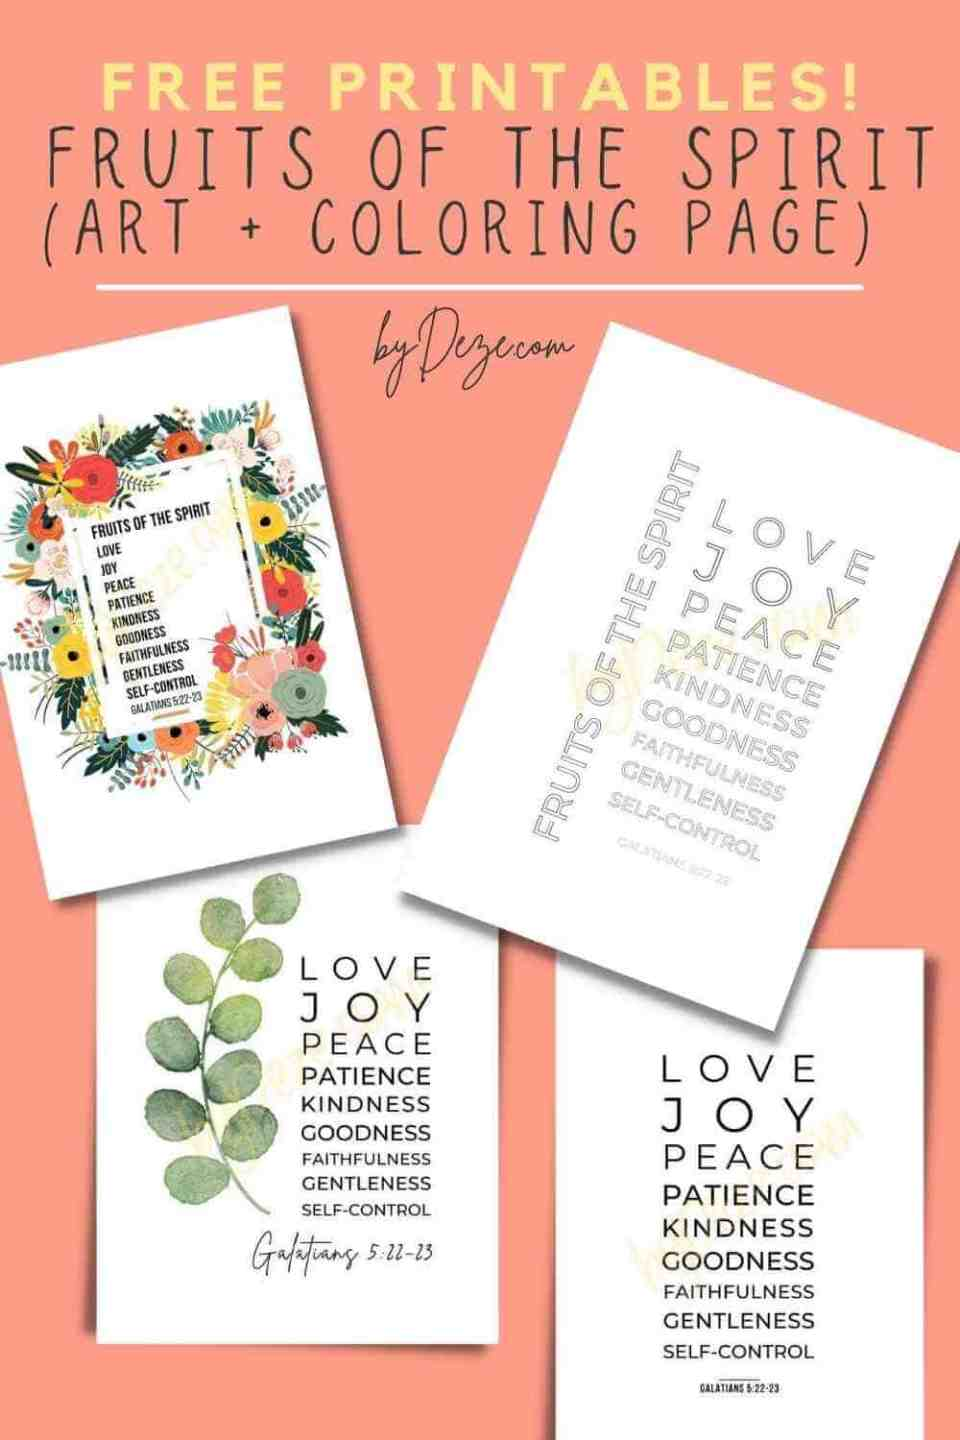 free fruit of the spirit printables for adults - 3 art decor and 1 coloring page